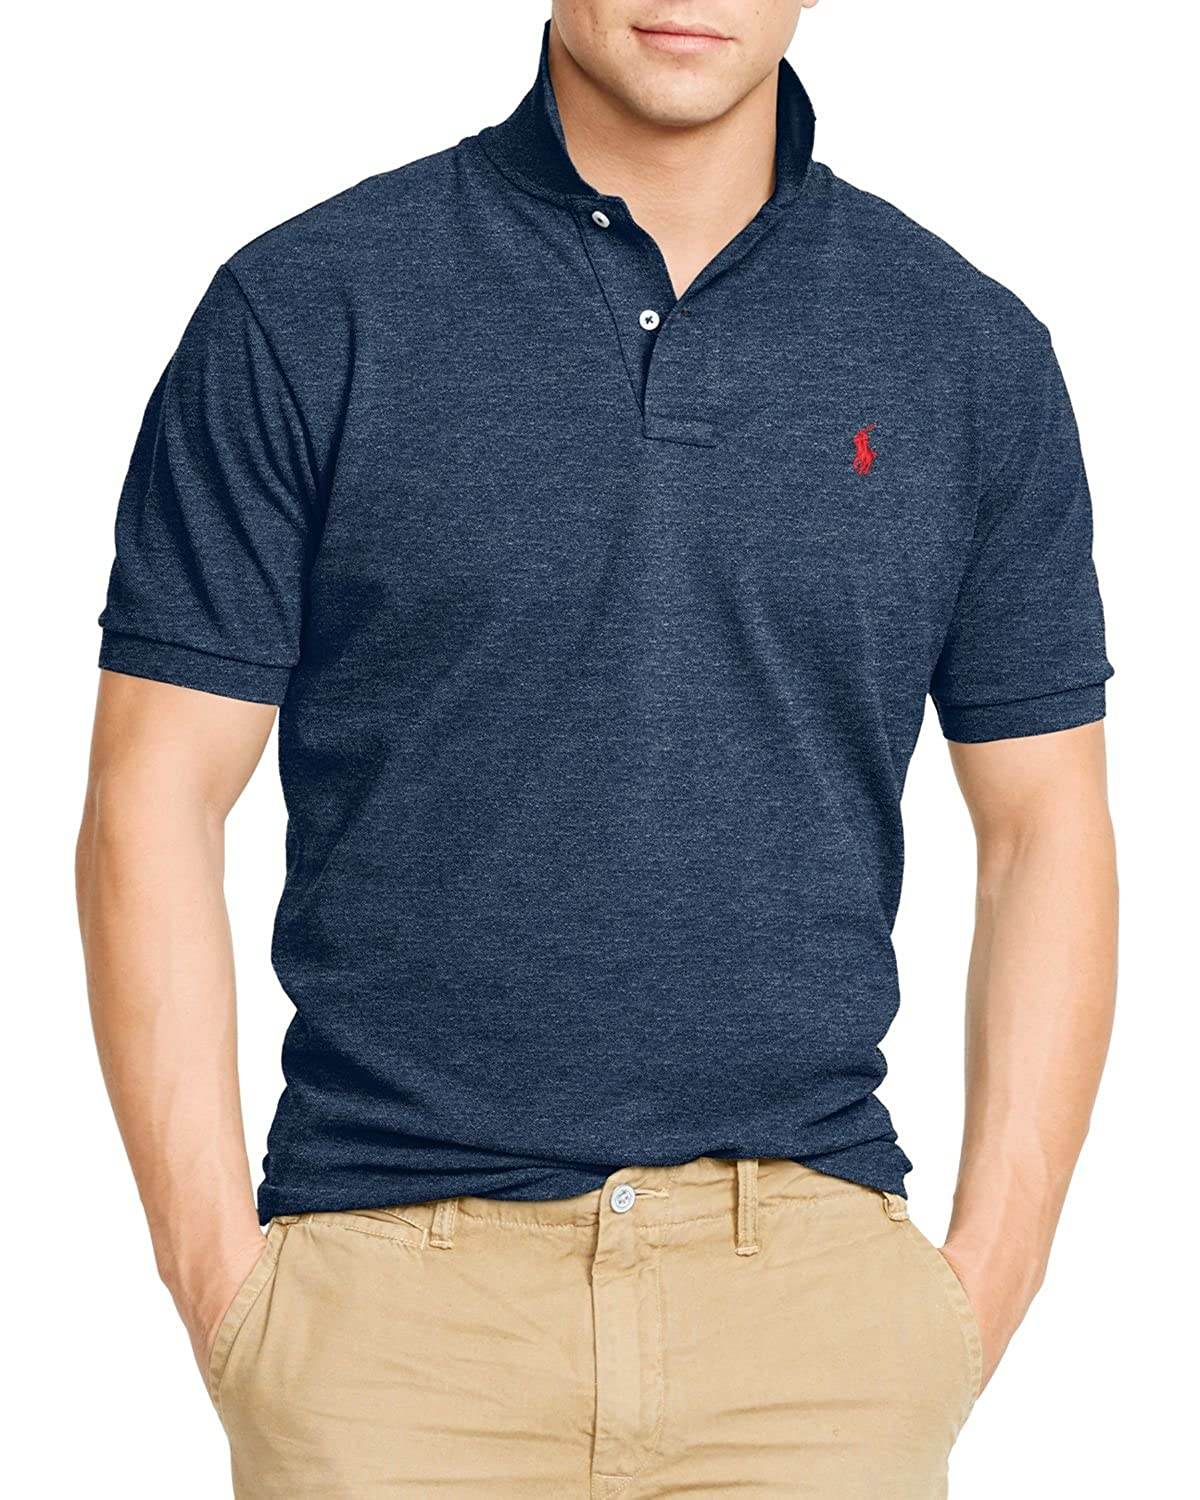 At Big Amazon And Shirt Men's Lt Ralph Lauren Tall Polo Blue yIgmfY76bv